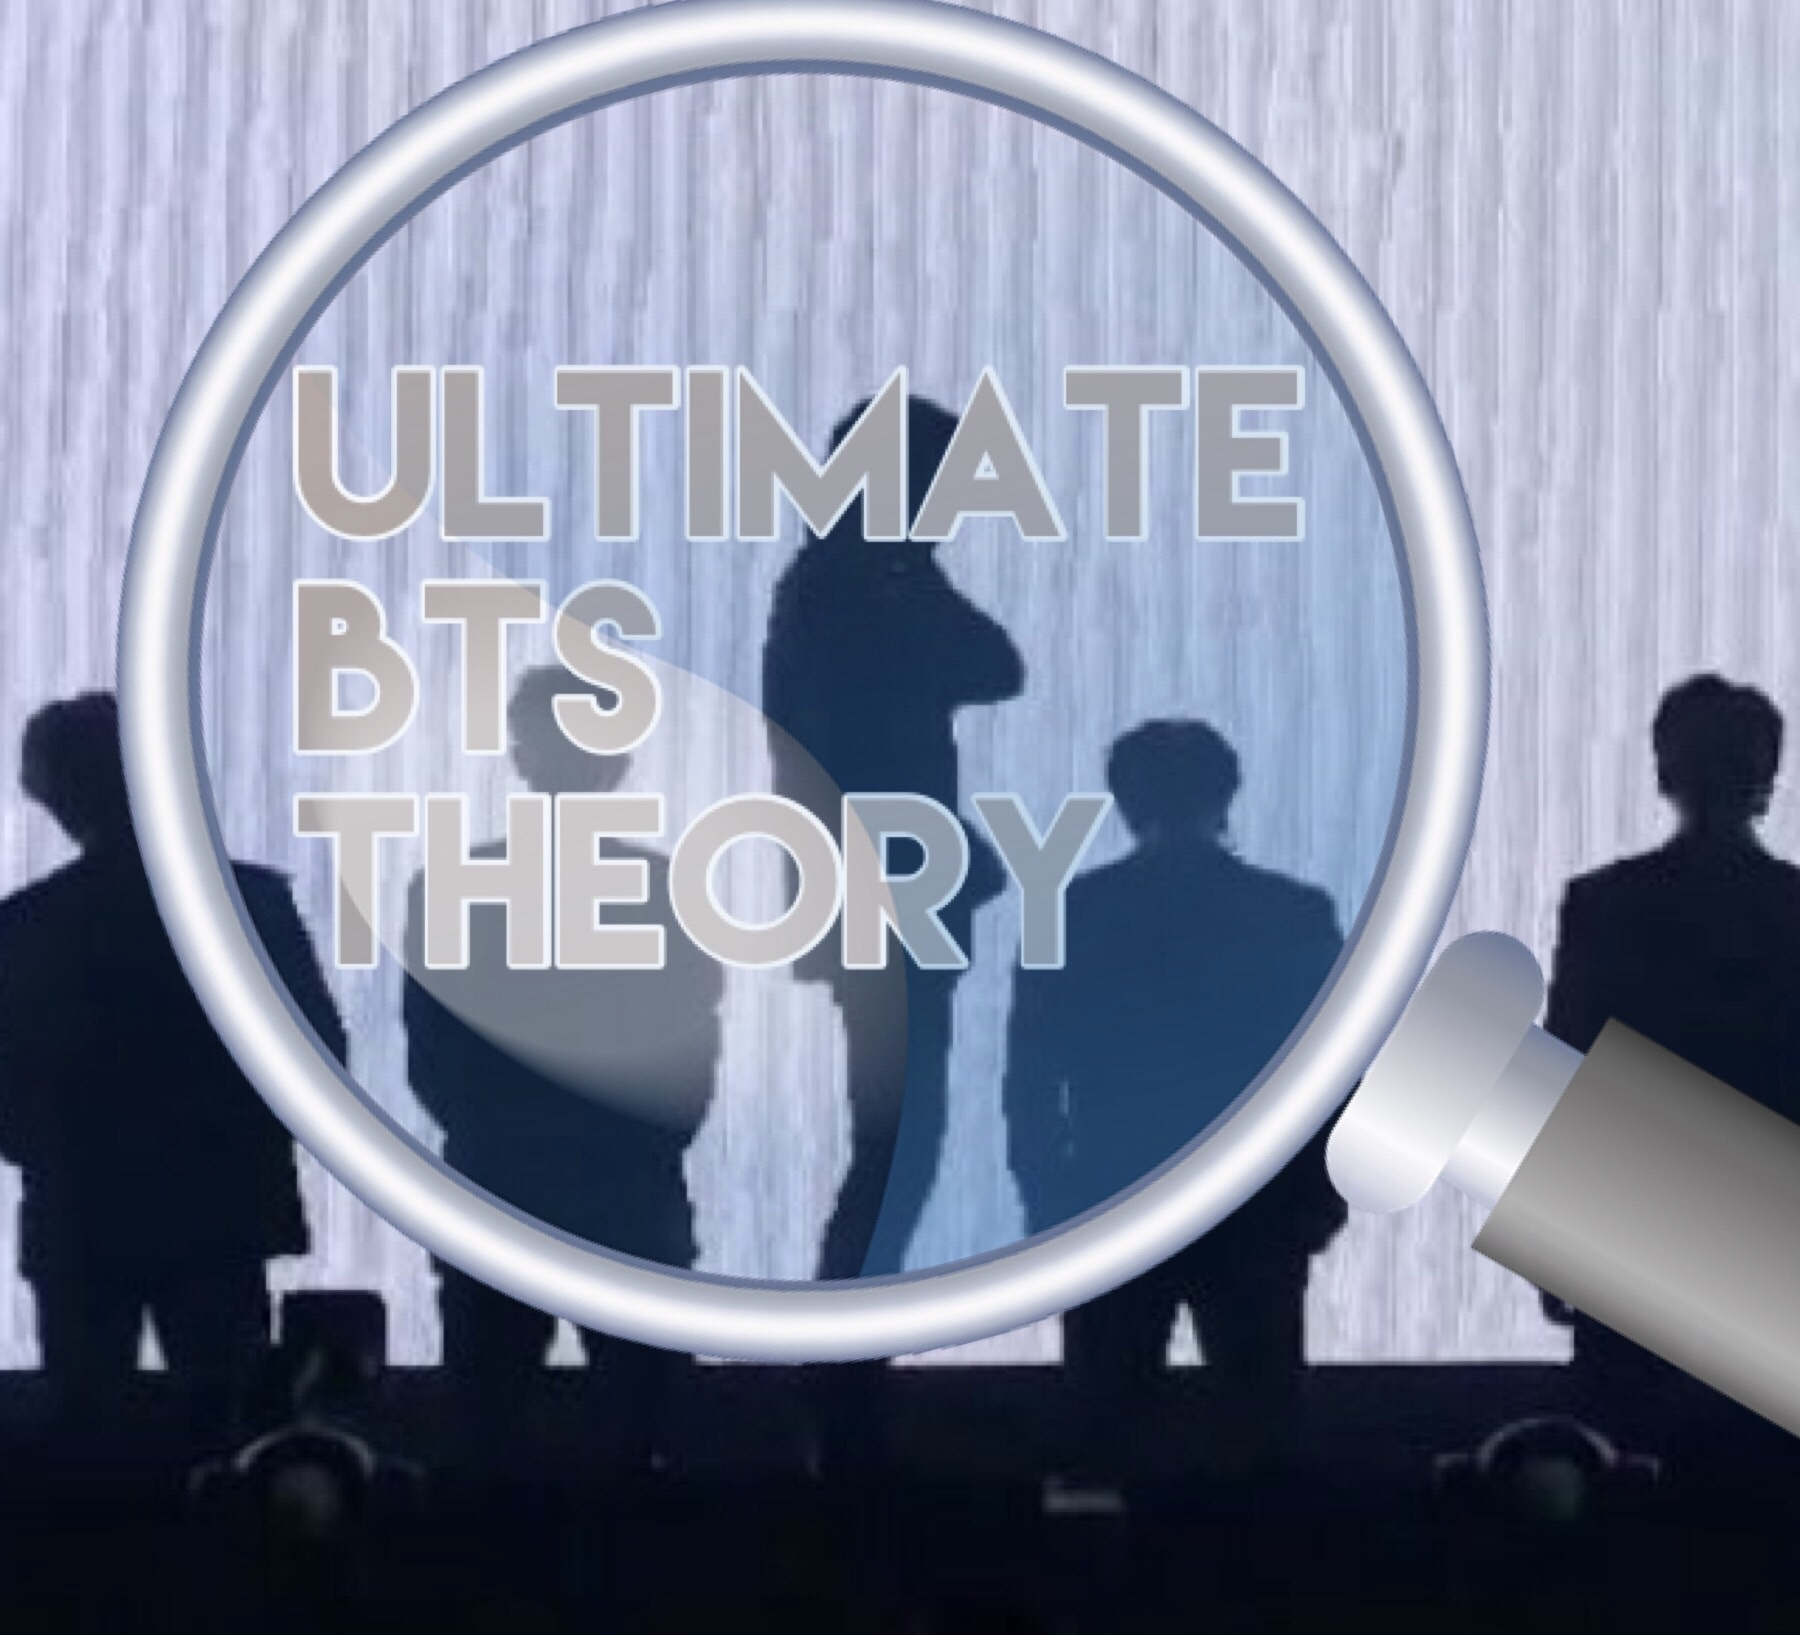 The Ultimate BTS MV Theory